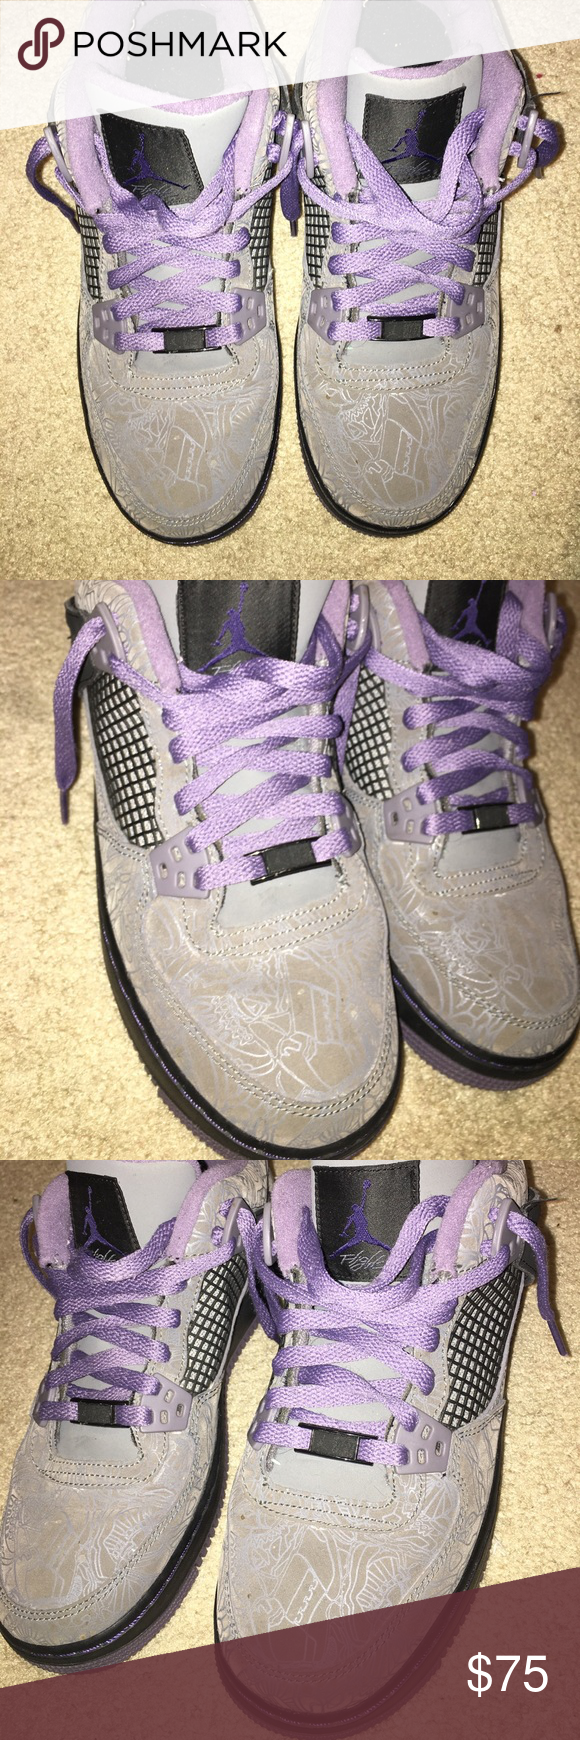 Air Jordan 4's, Womens Gray, Black & Purple. Shoe has a